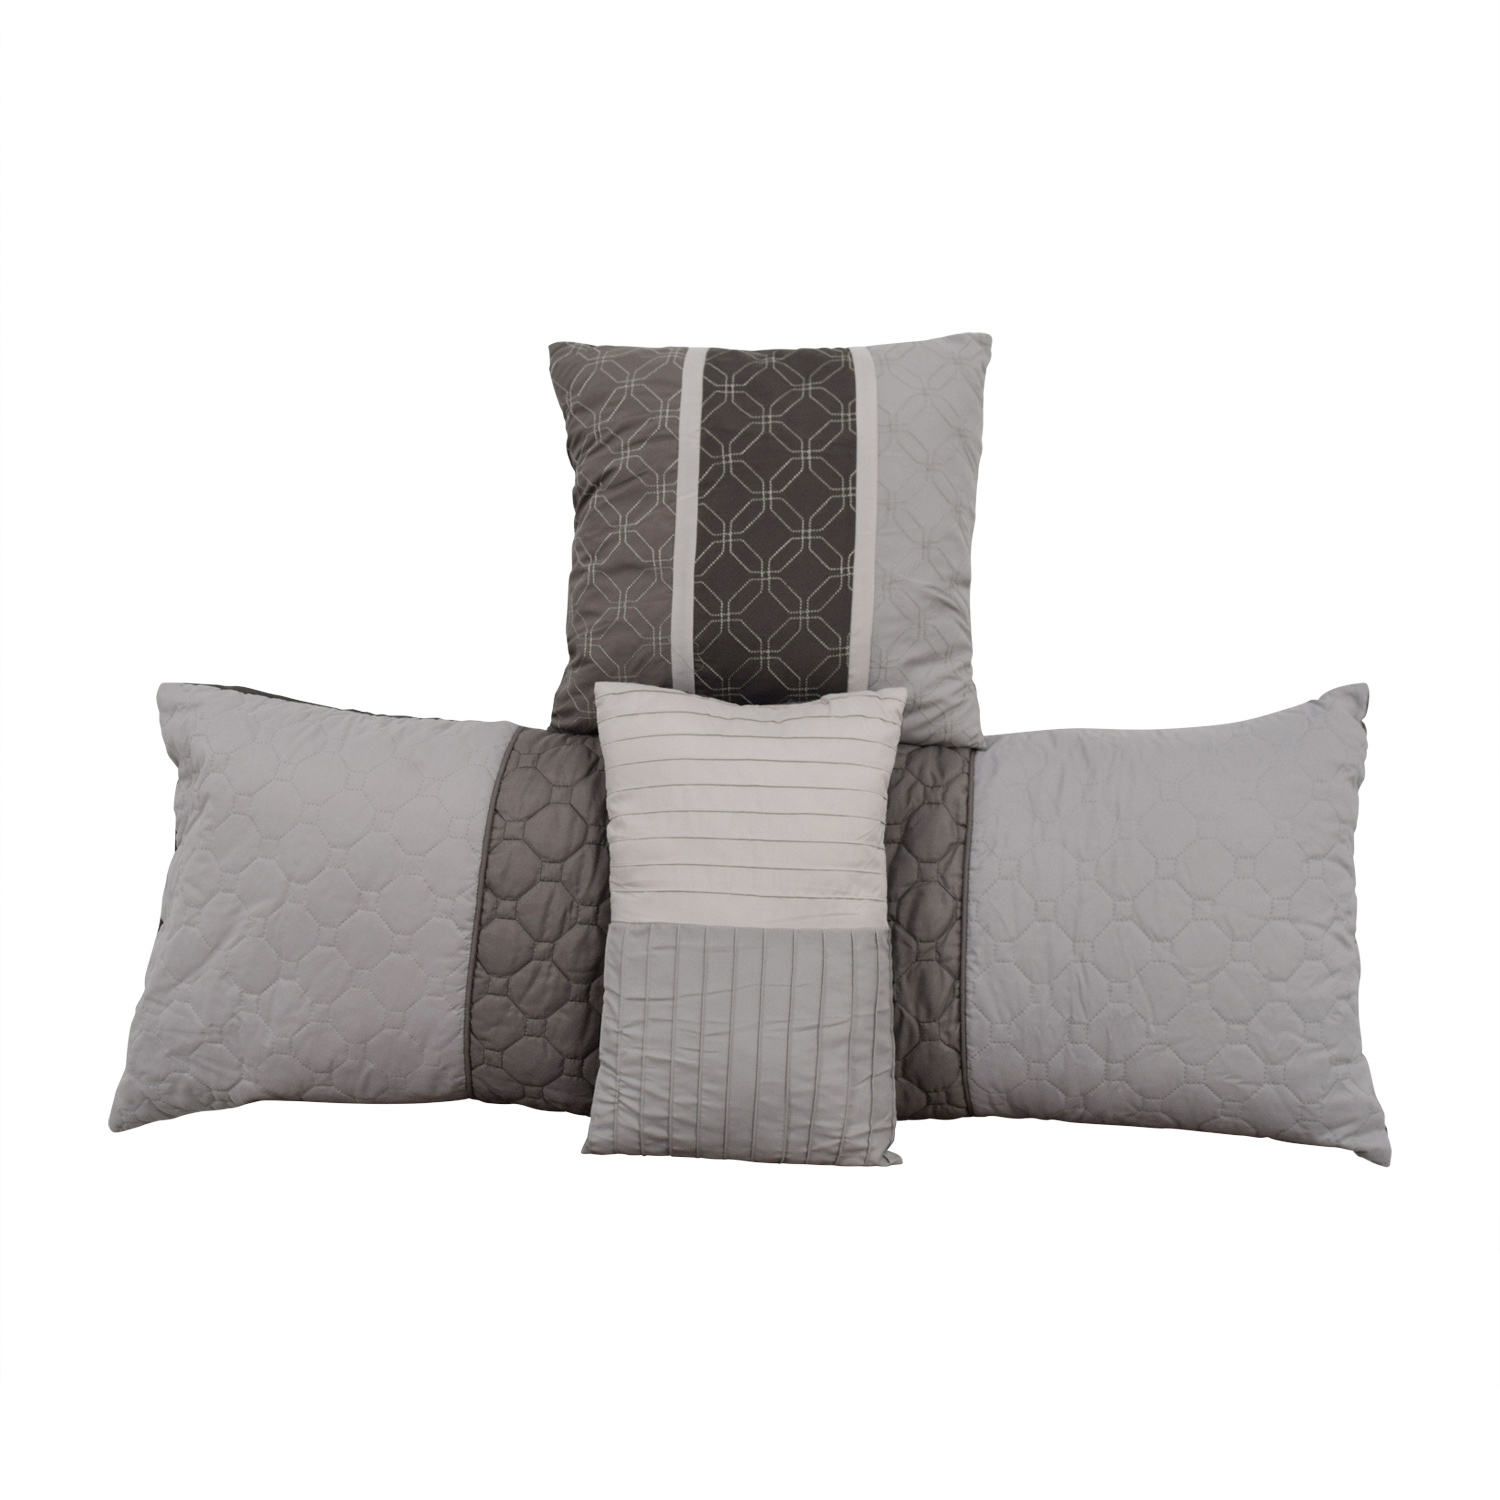 Macy's Macy's Grey Decorative Toss Pillows